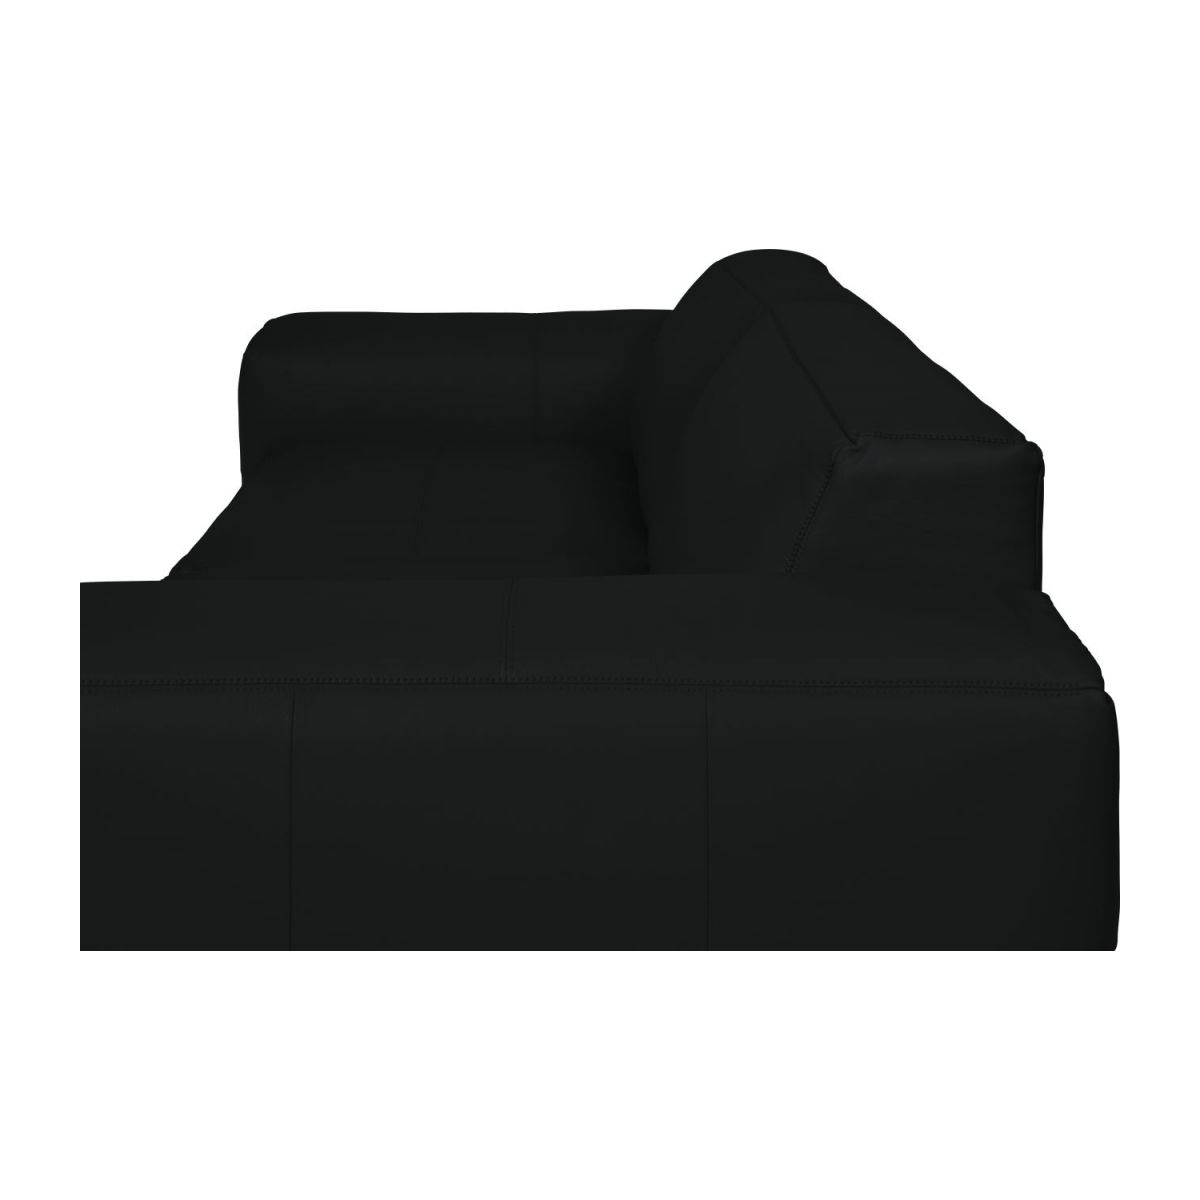 4 seater sofa in Savoy semi-aniline leather, platin black n°11